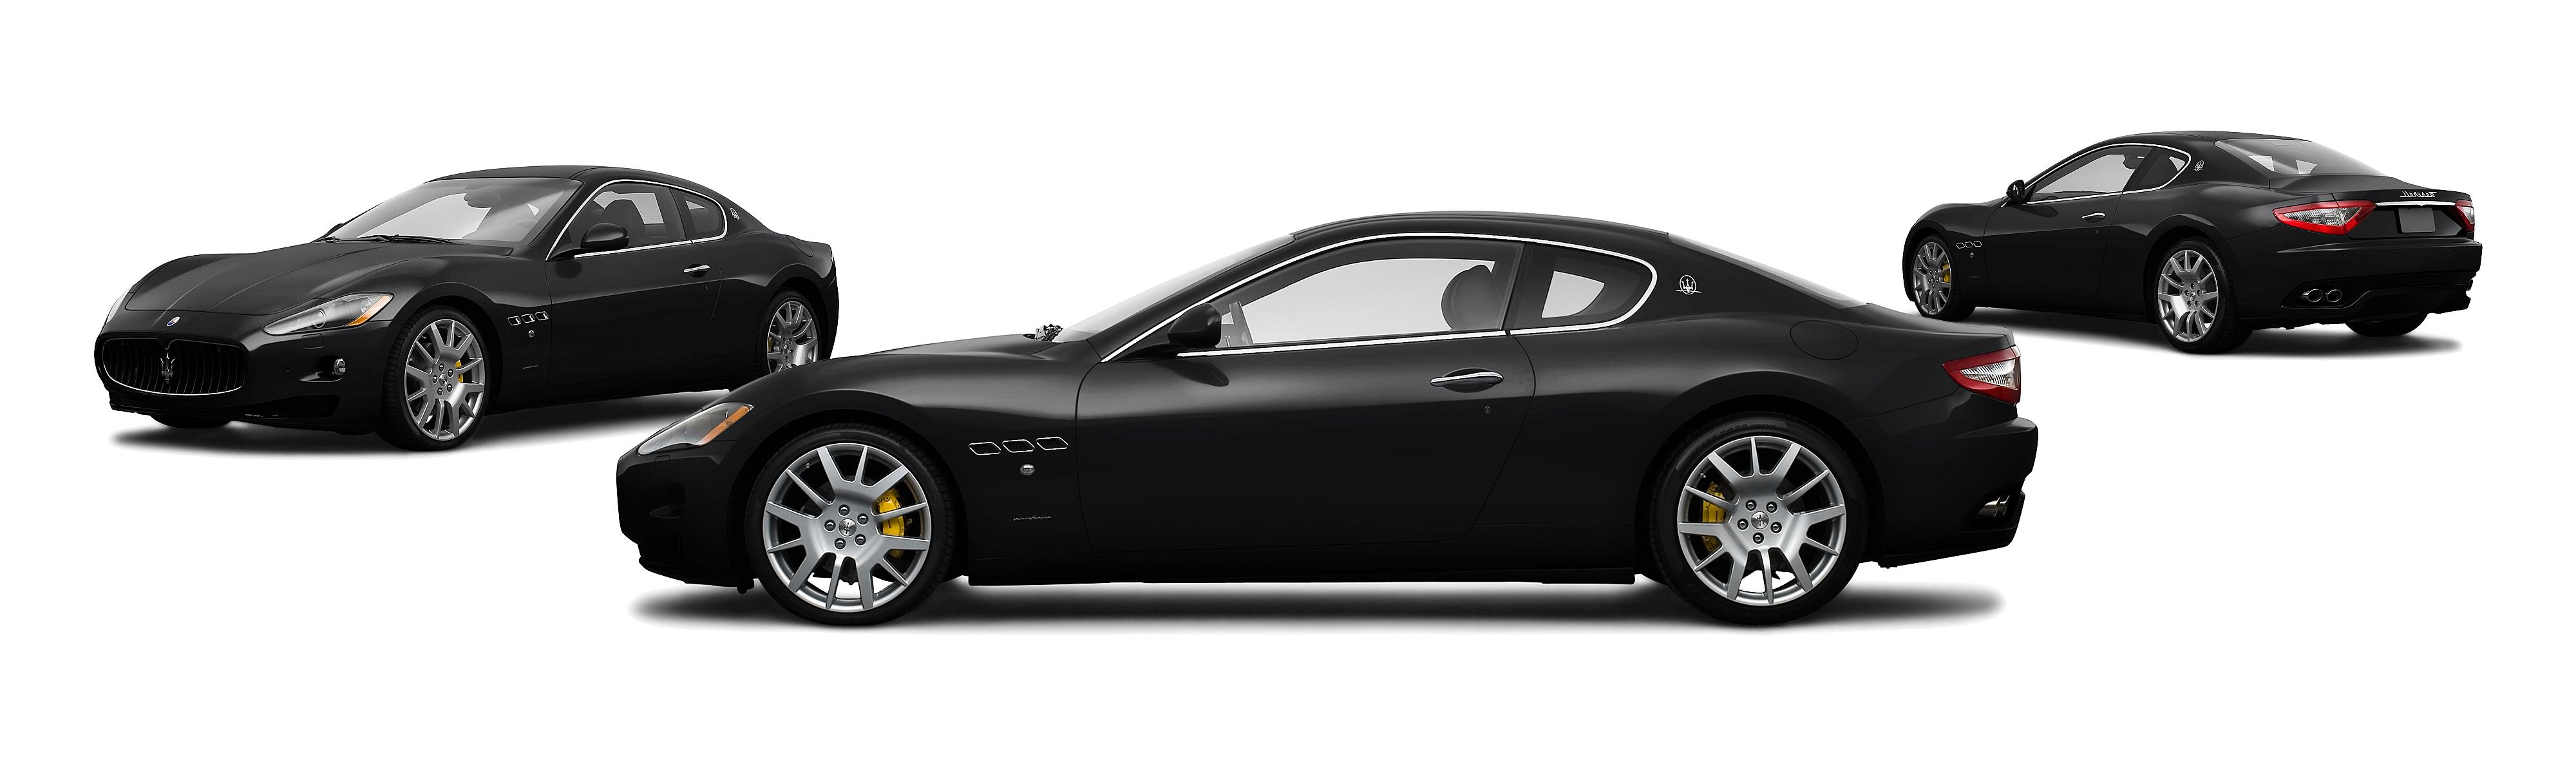 https://www.groovecar.com/stock/images/color/2009/maserati/granturismo/s-2dr-coupe/2009-maserati-granturismo-s-2dr-coupe-nero-carbonio-black-composite-large.jpg